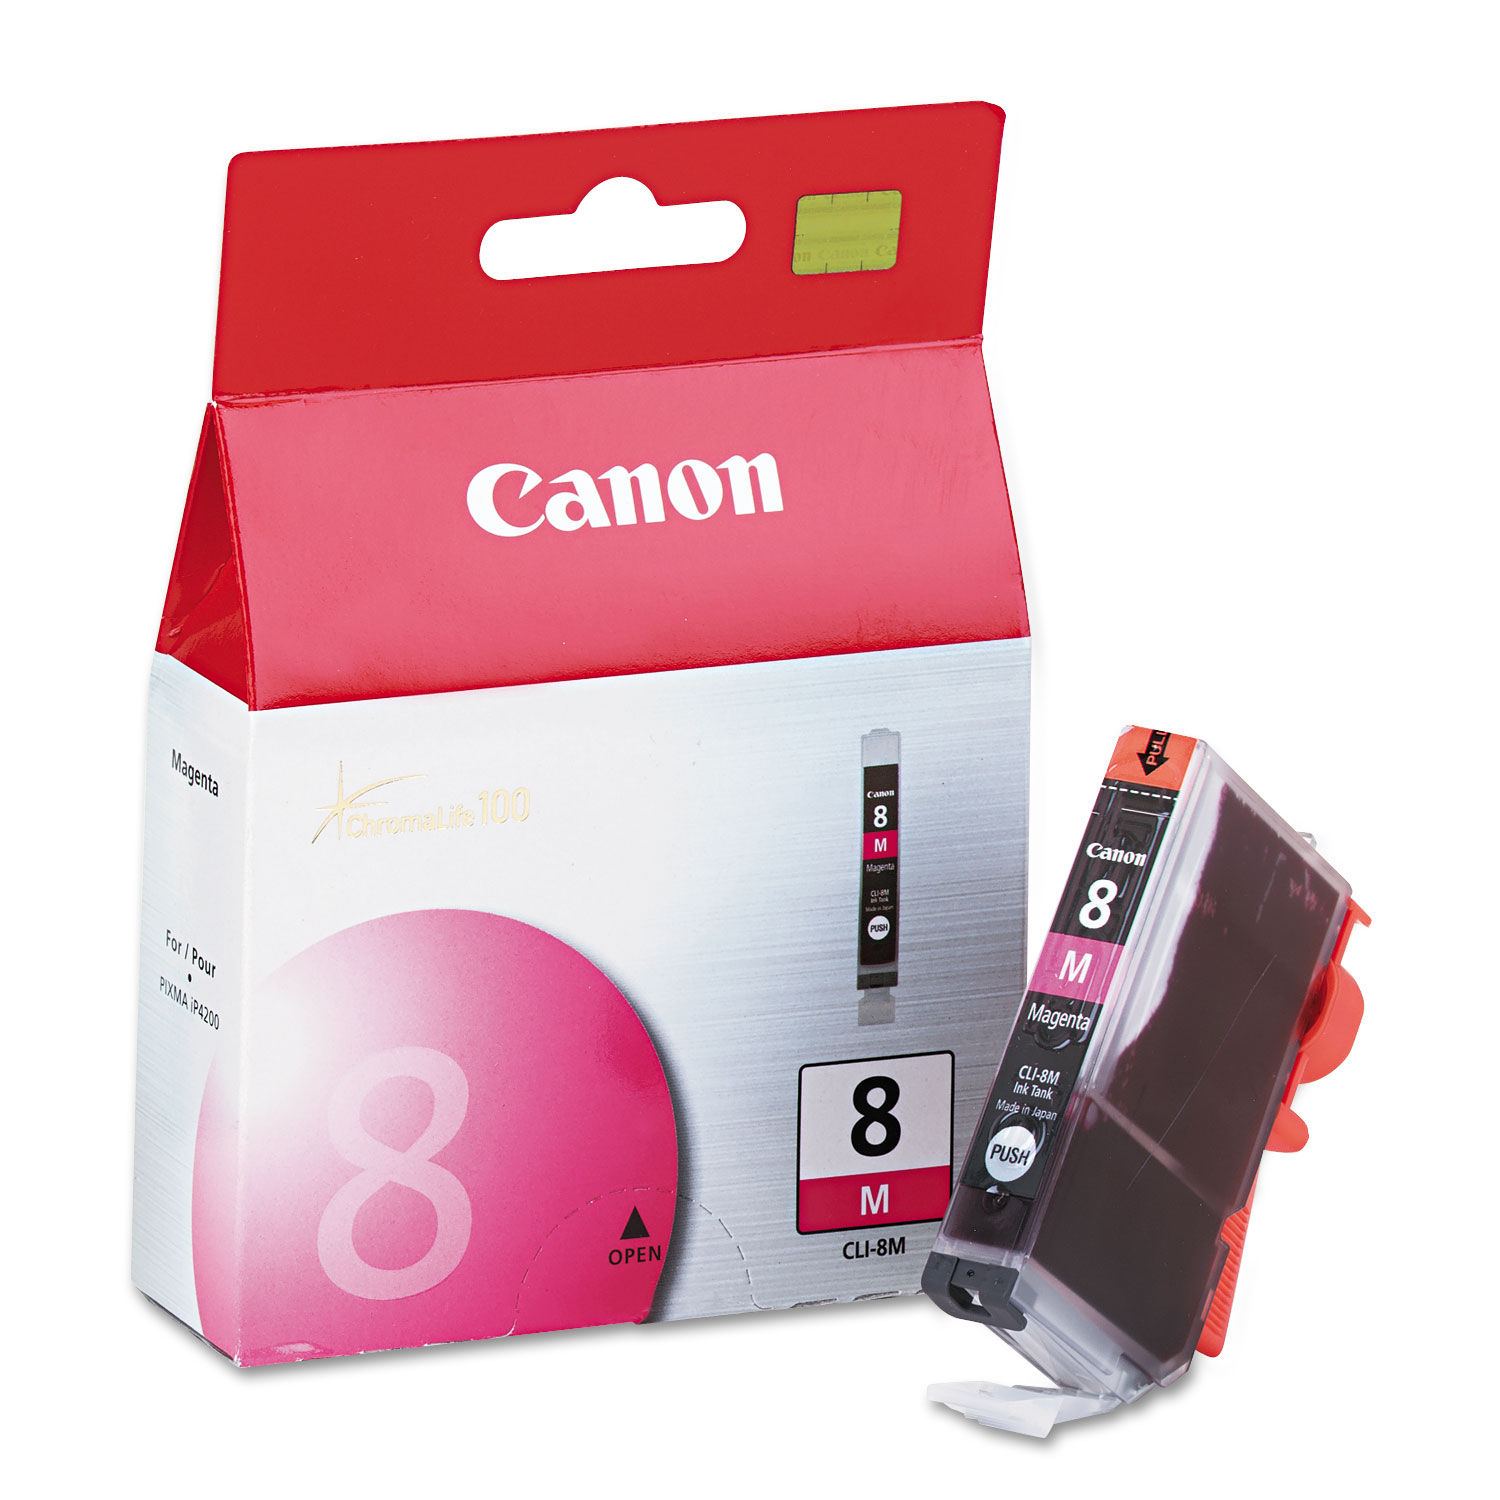 5-Pack Photo Magenta Ink Cartridge for Canon PIXMA Pro9000 Mark II Printer